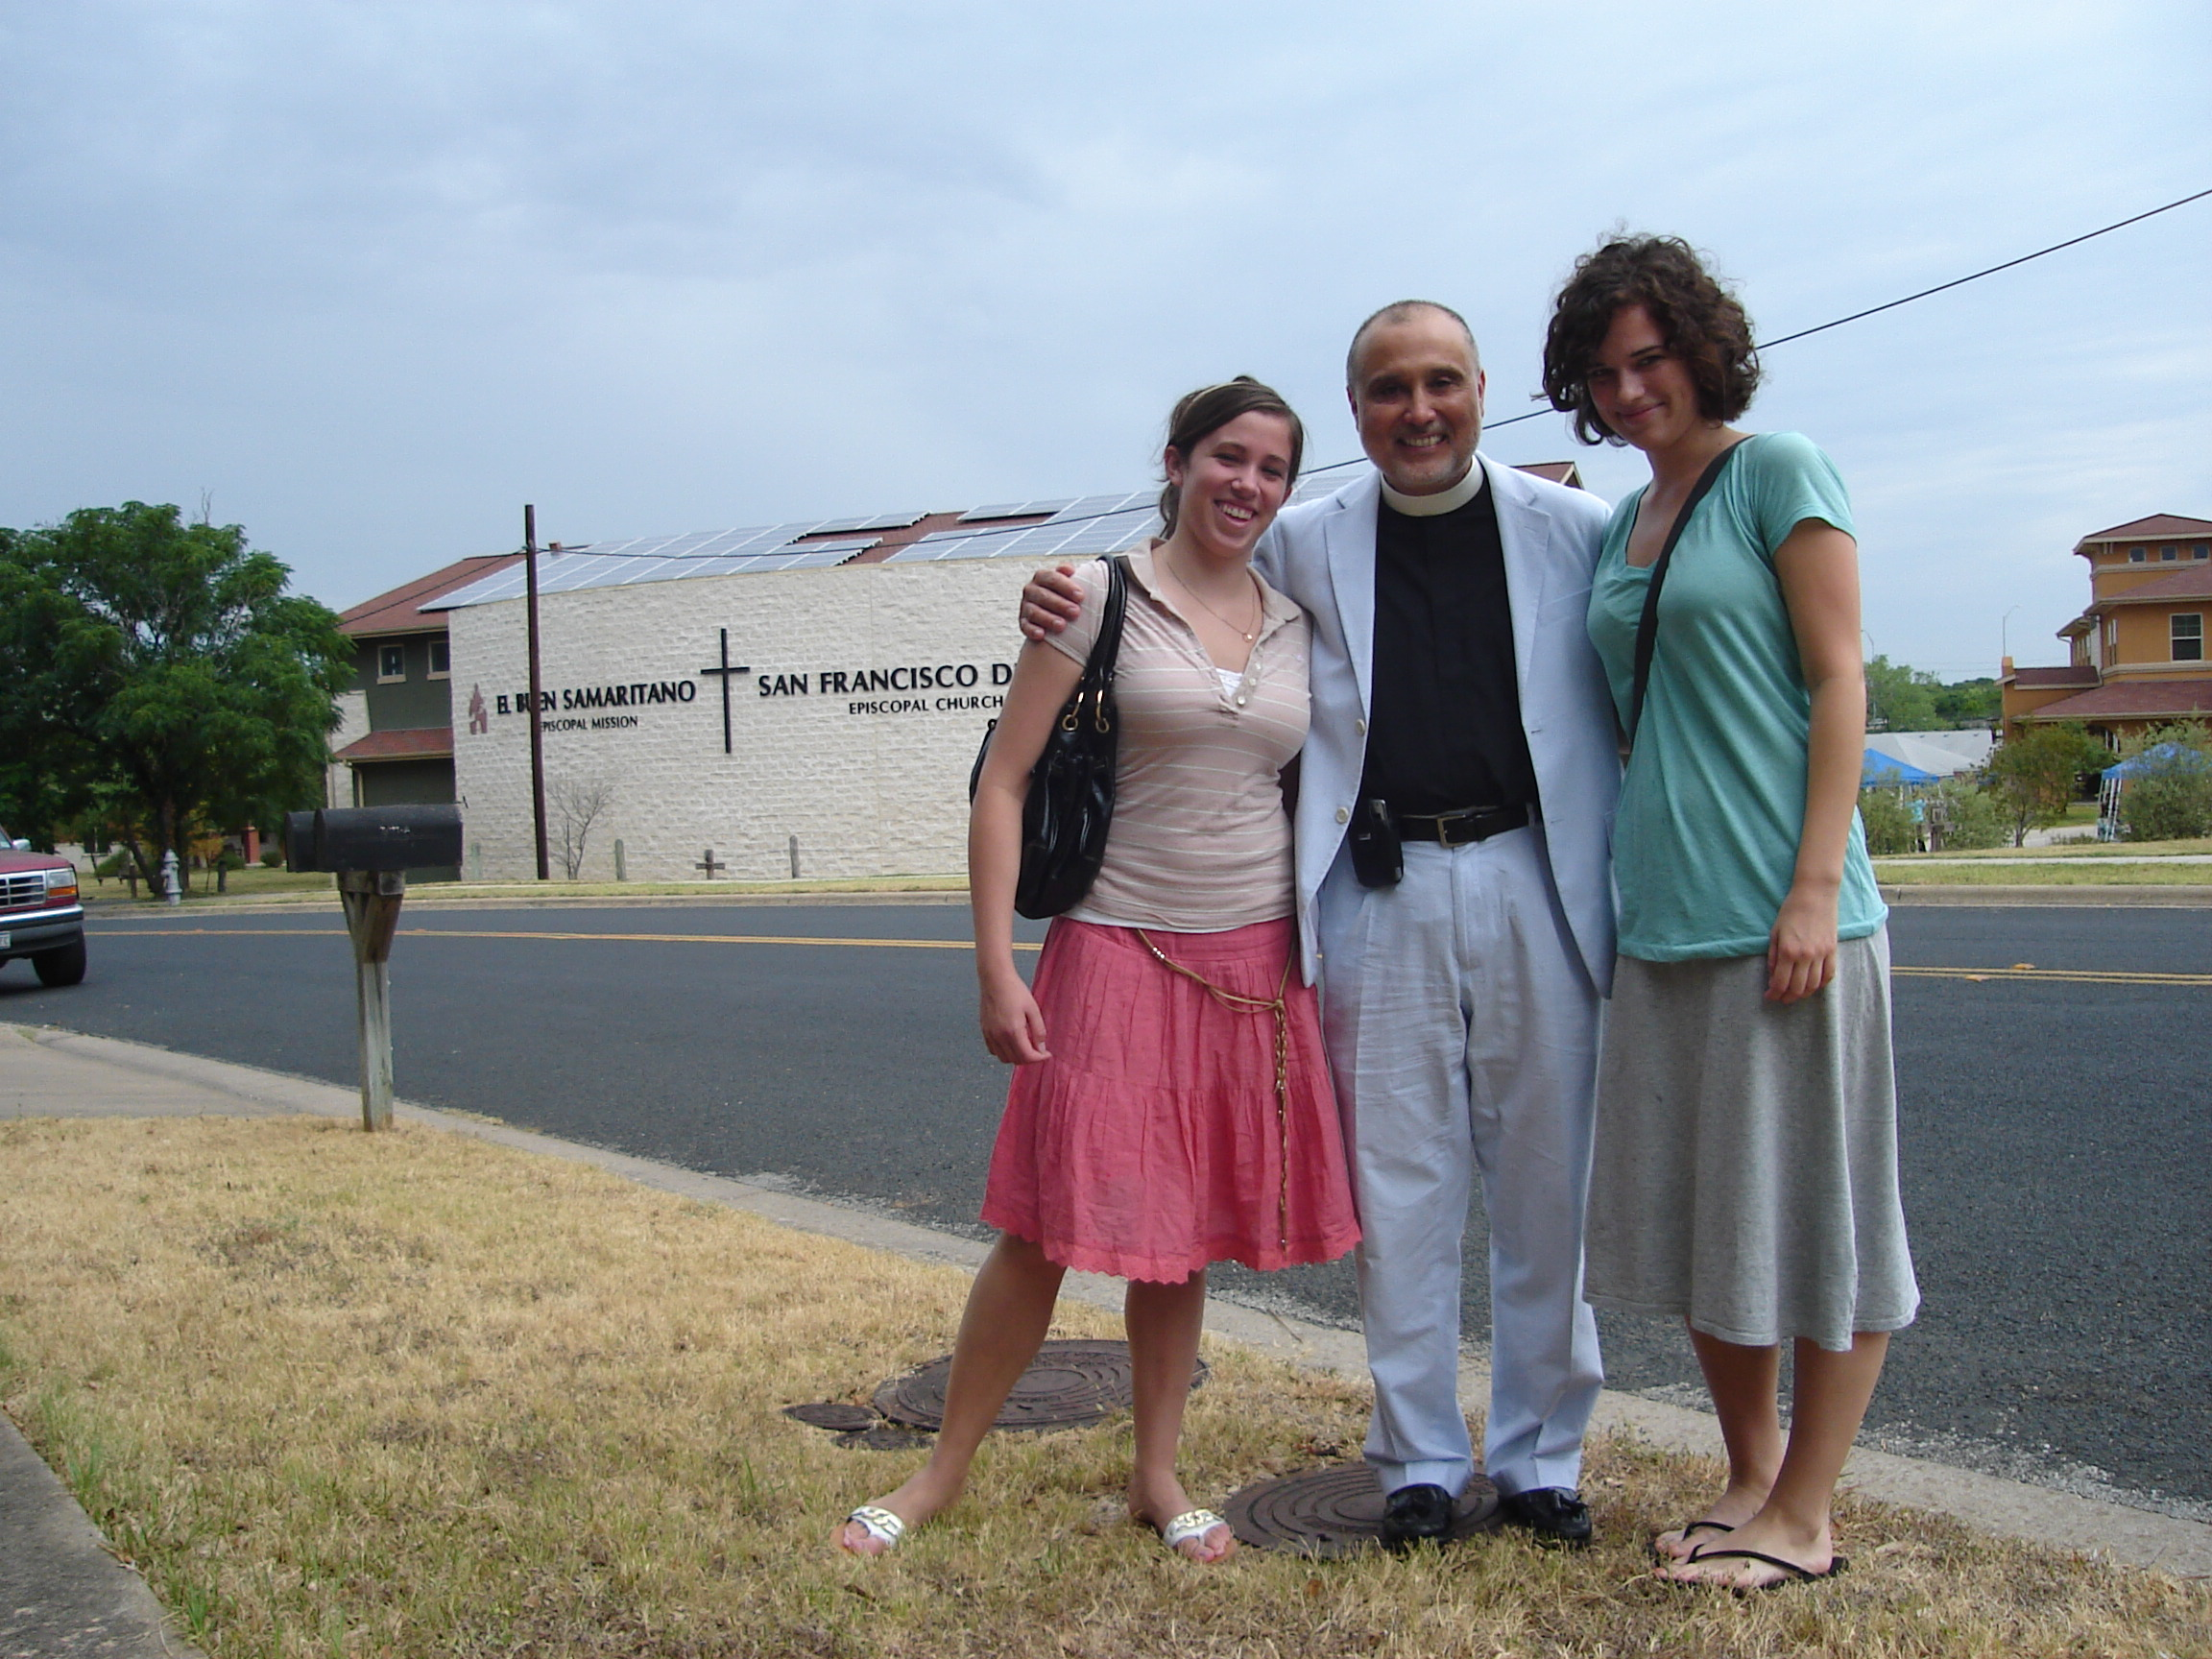 Adrien and I with Reverend Jose Palma--if you look closely you can see the solar panels forming a cross on the roof of the church building behind us